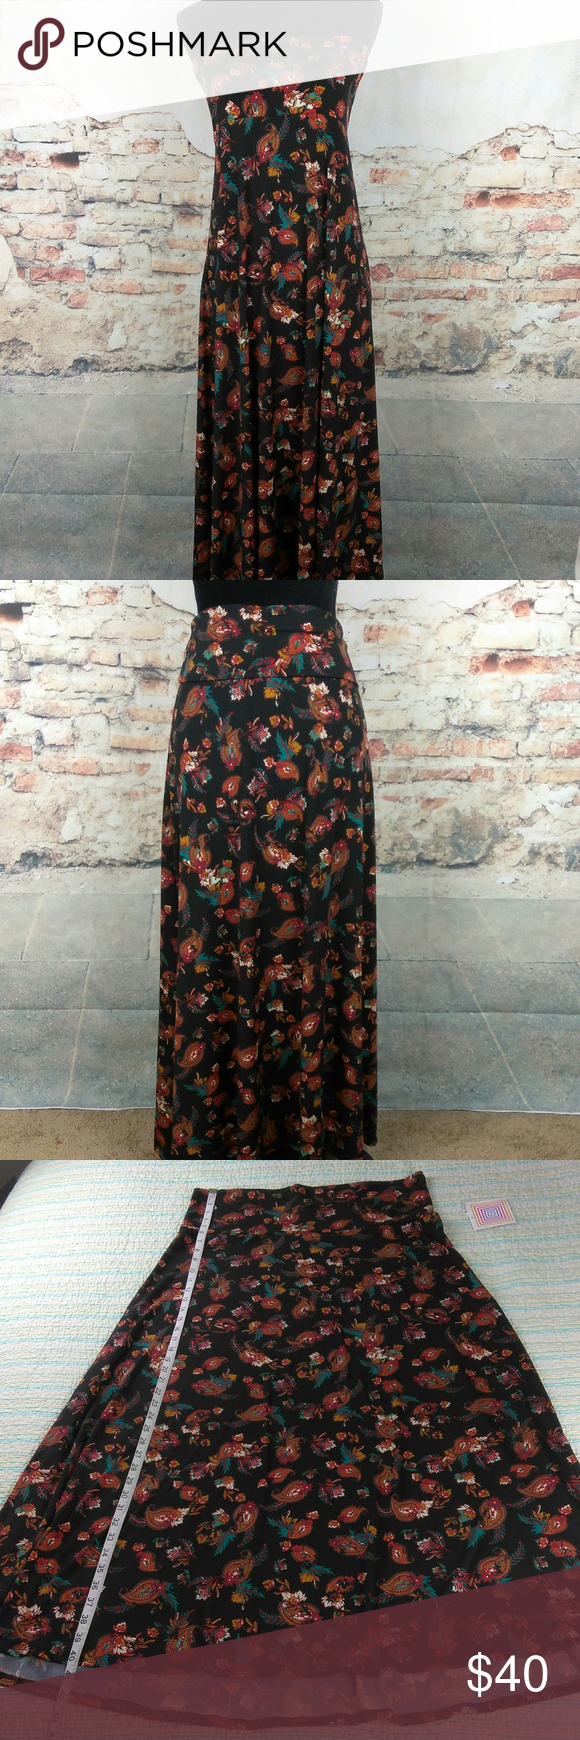 d399dd4527 LuLaRoe 2XL Black Red Teal Floral Paisley Maxi NWT LuLaRoe Sz 2XL Black Red  Teal Floral Paisley Stretch Slinky Long Maxi Skirt LuLaRoe Dresses Maxi